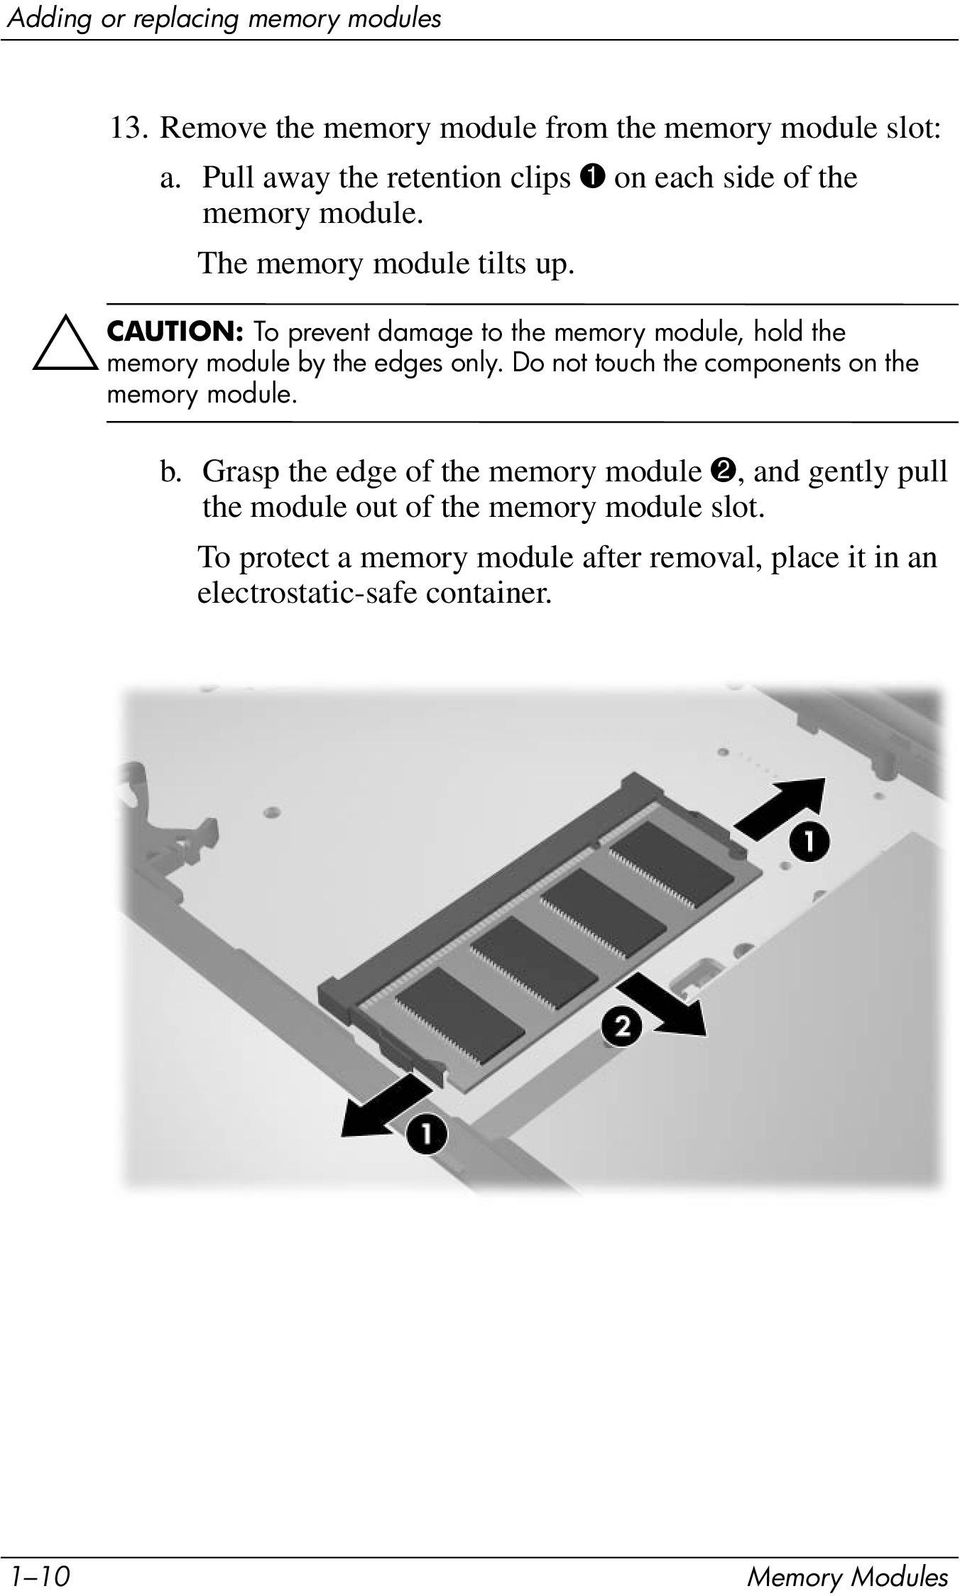 ÄCAUTION: To prevent damage to the memory module, hold the memory module by the edges only.